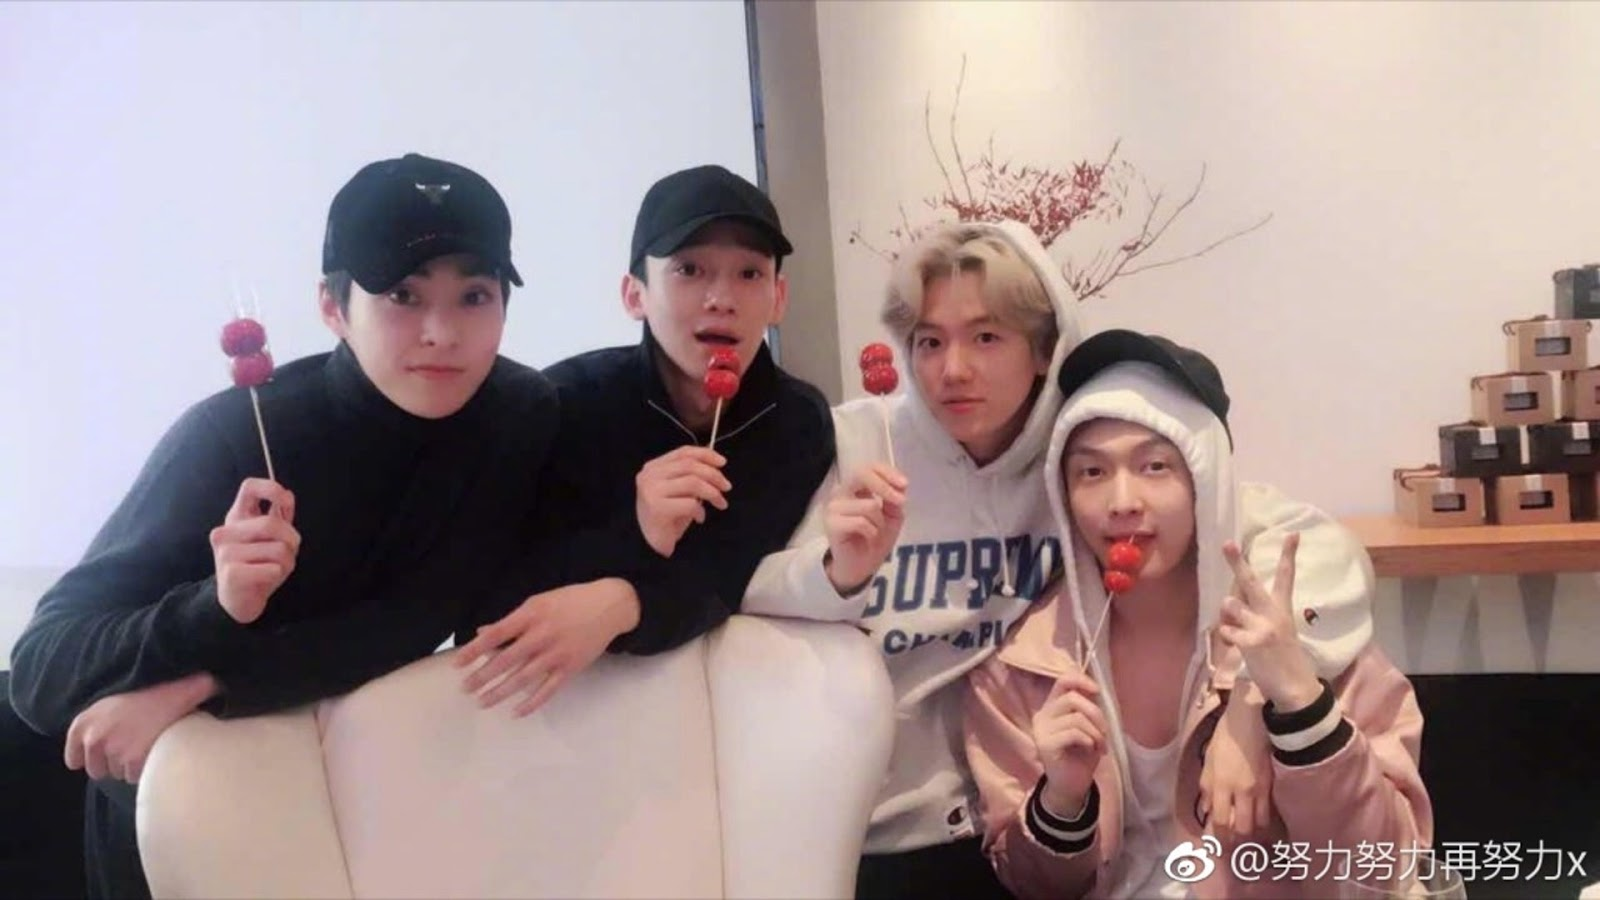 Exo Ls Are Convinced Exo Will Make A Comeback As A Complete 9 Member